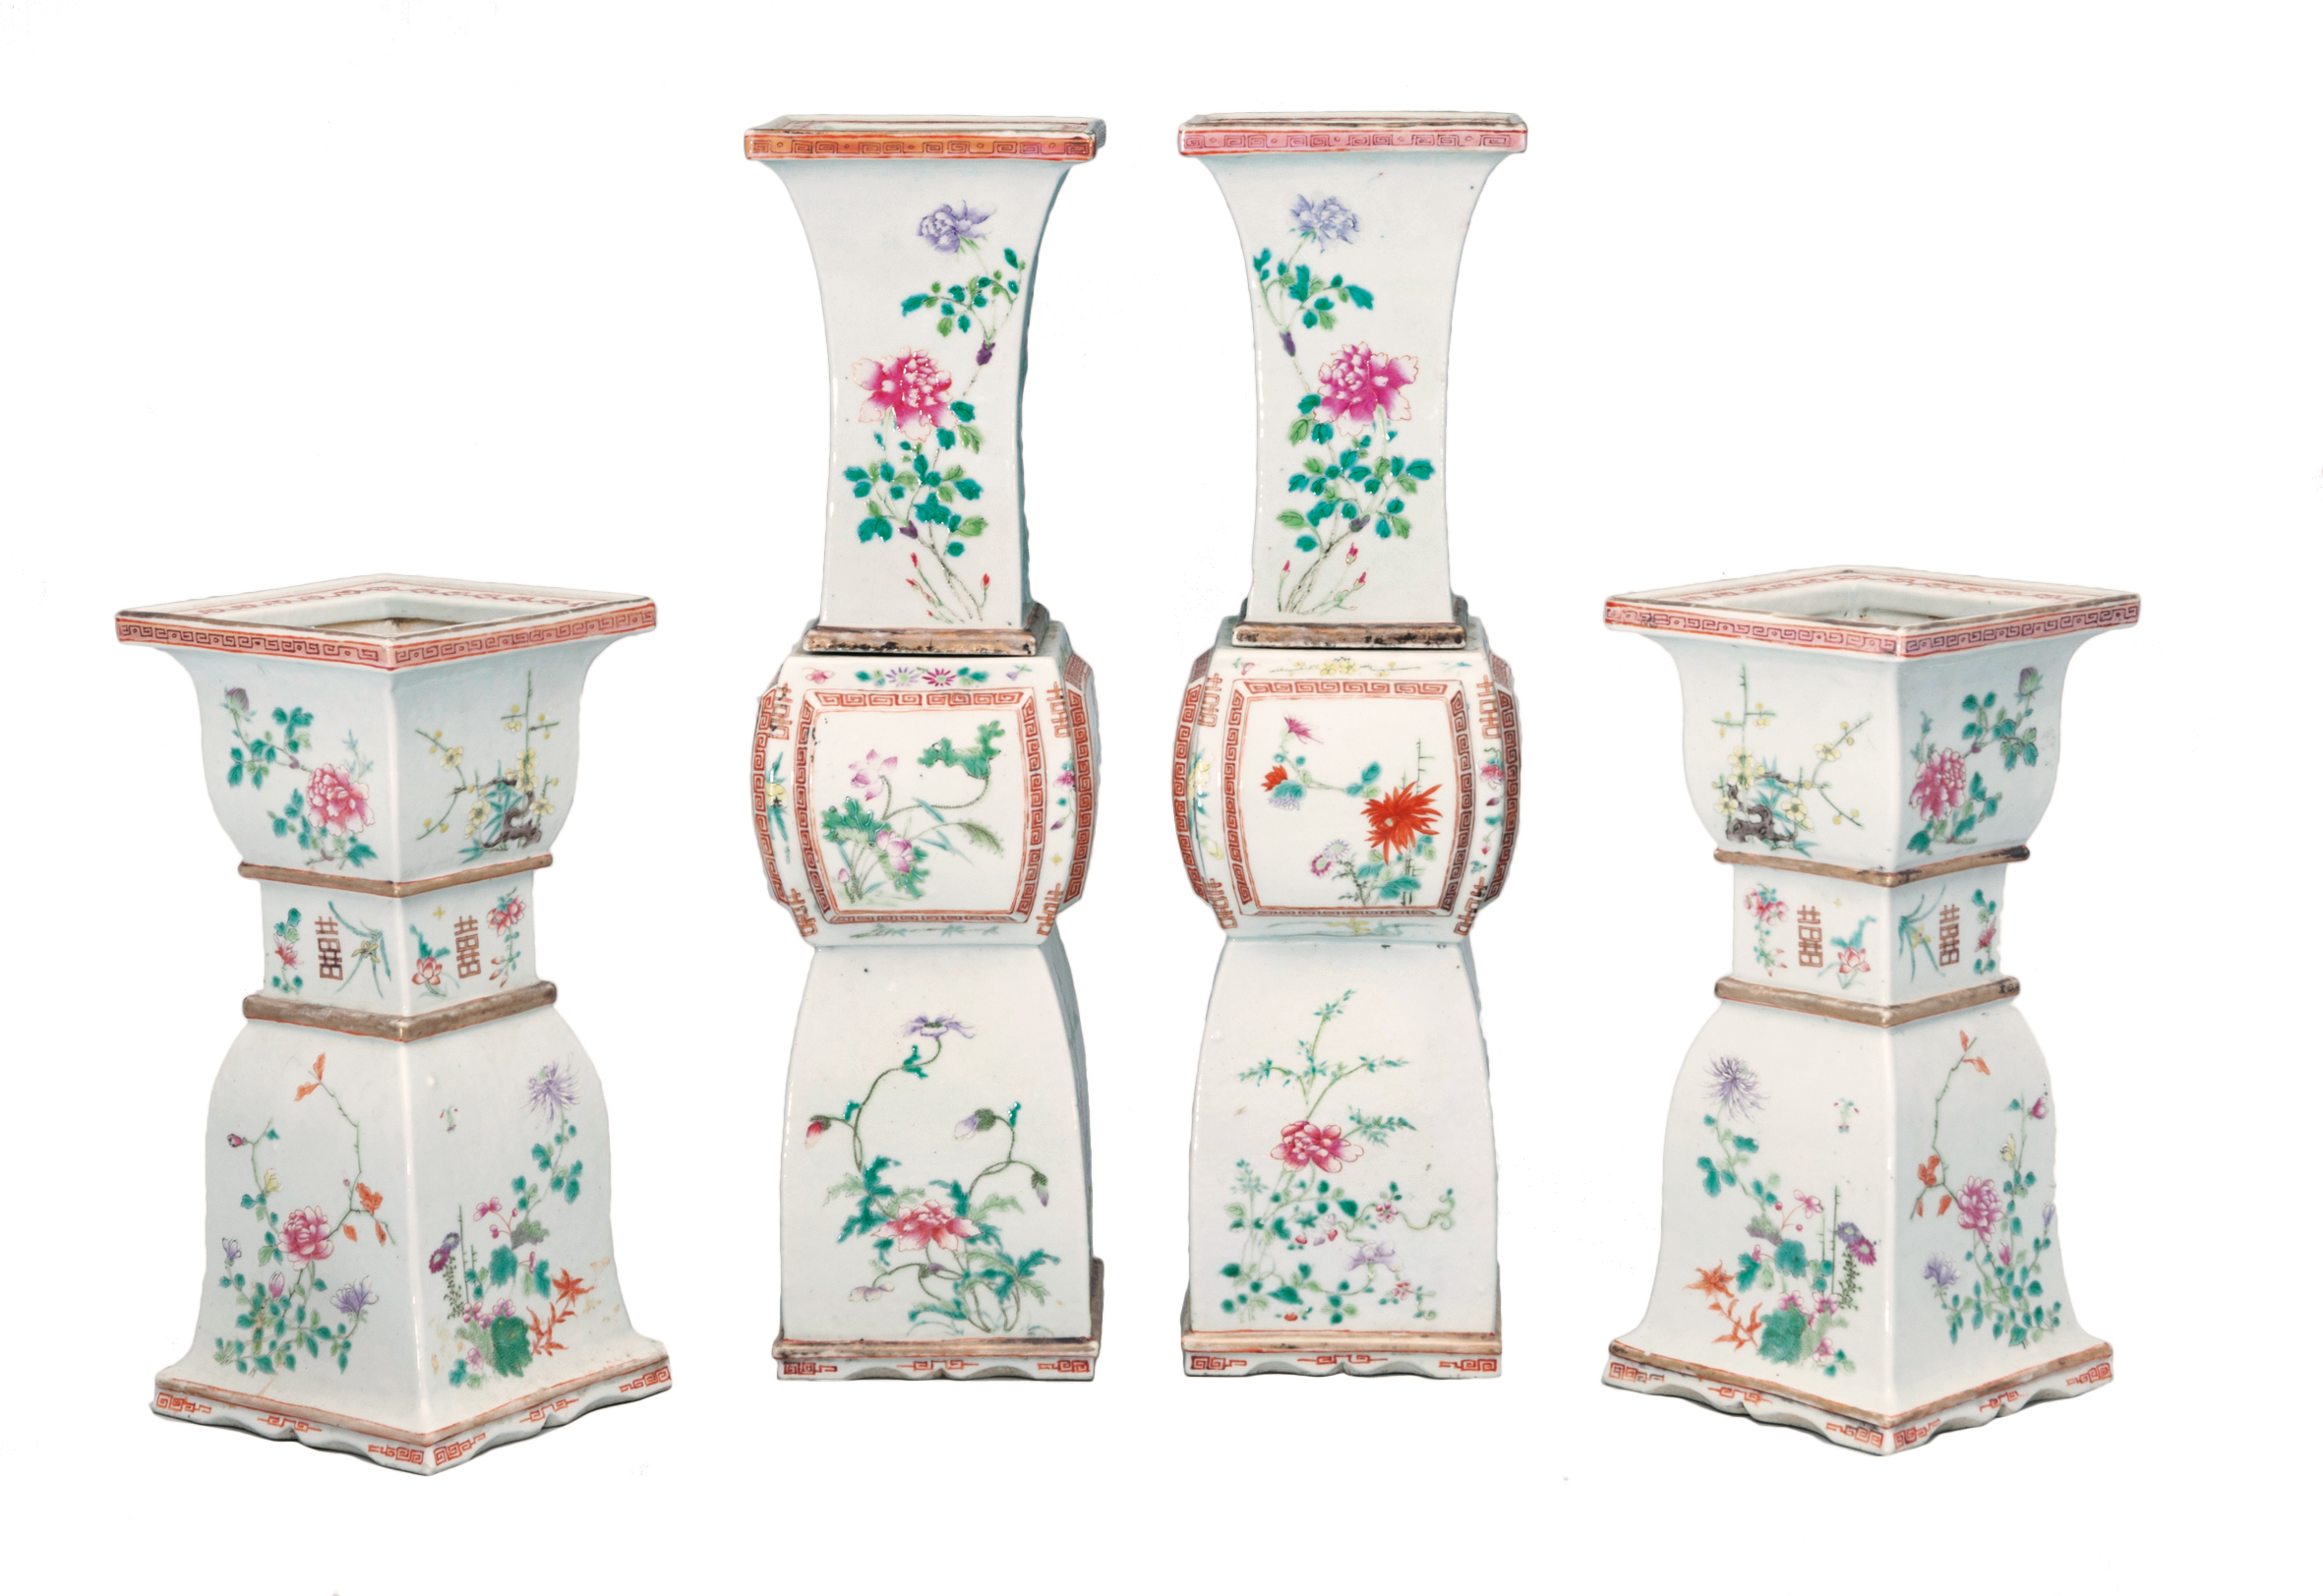 A set of 4 Famille-Rose wedding altar vases